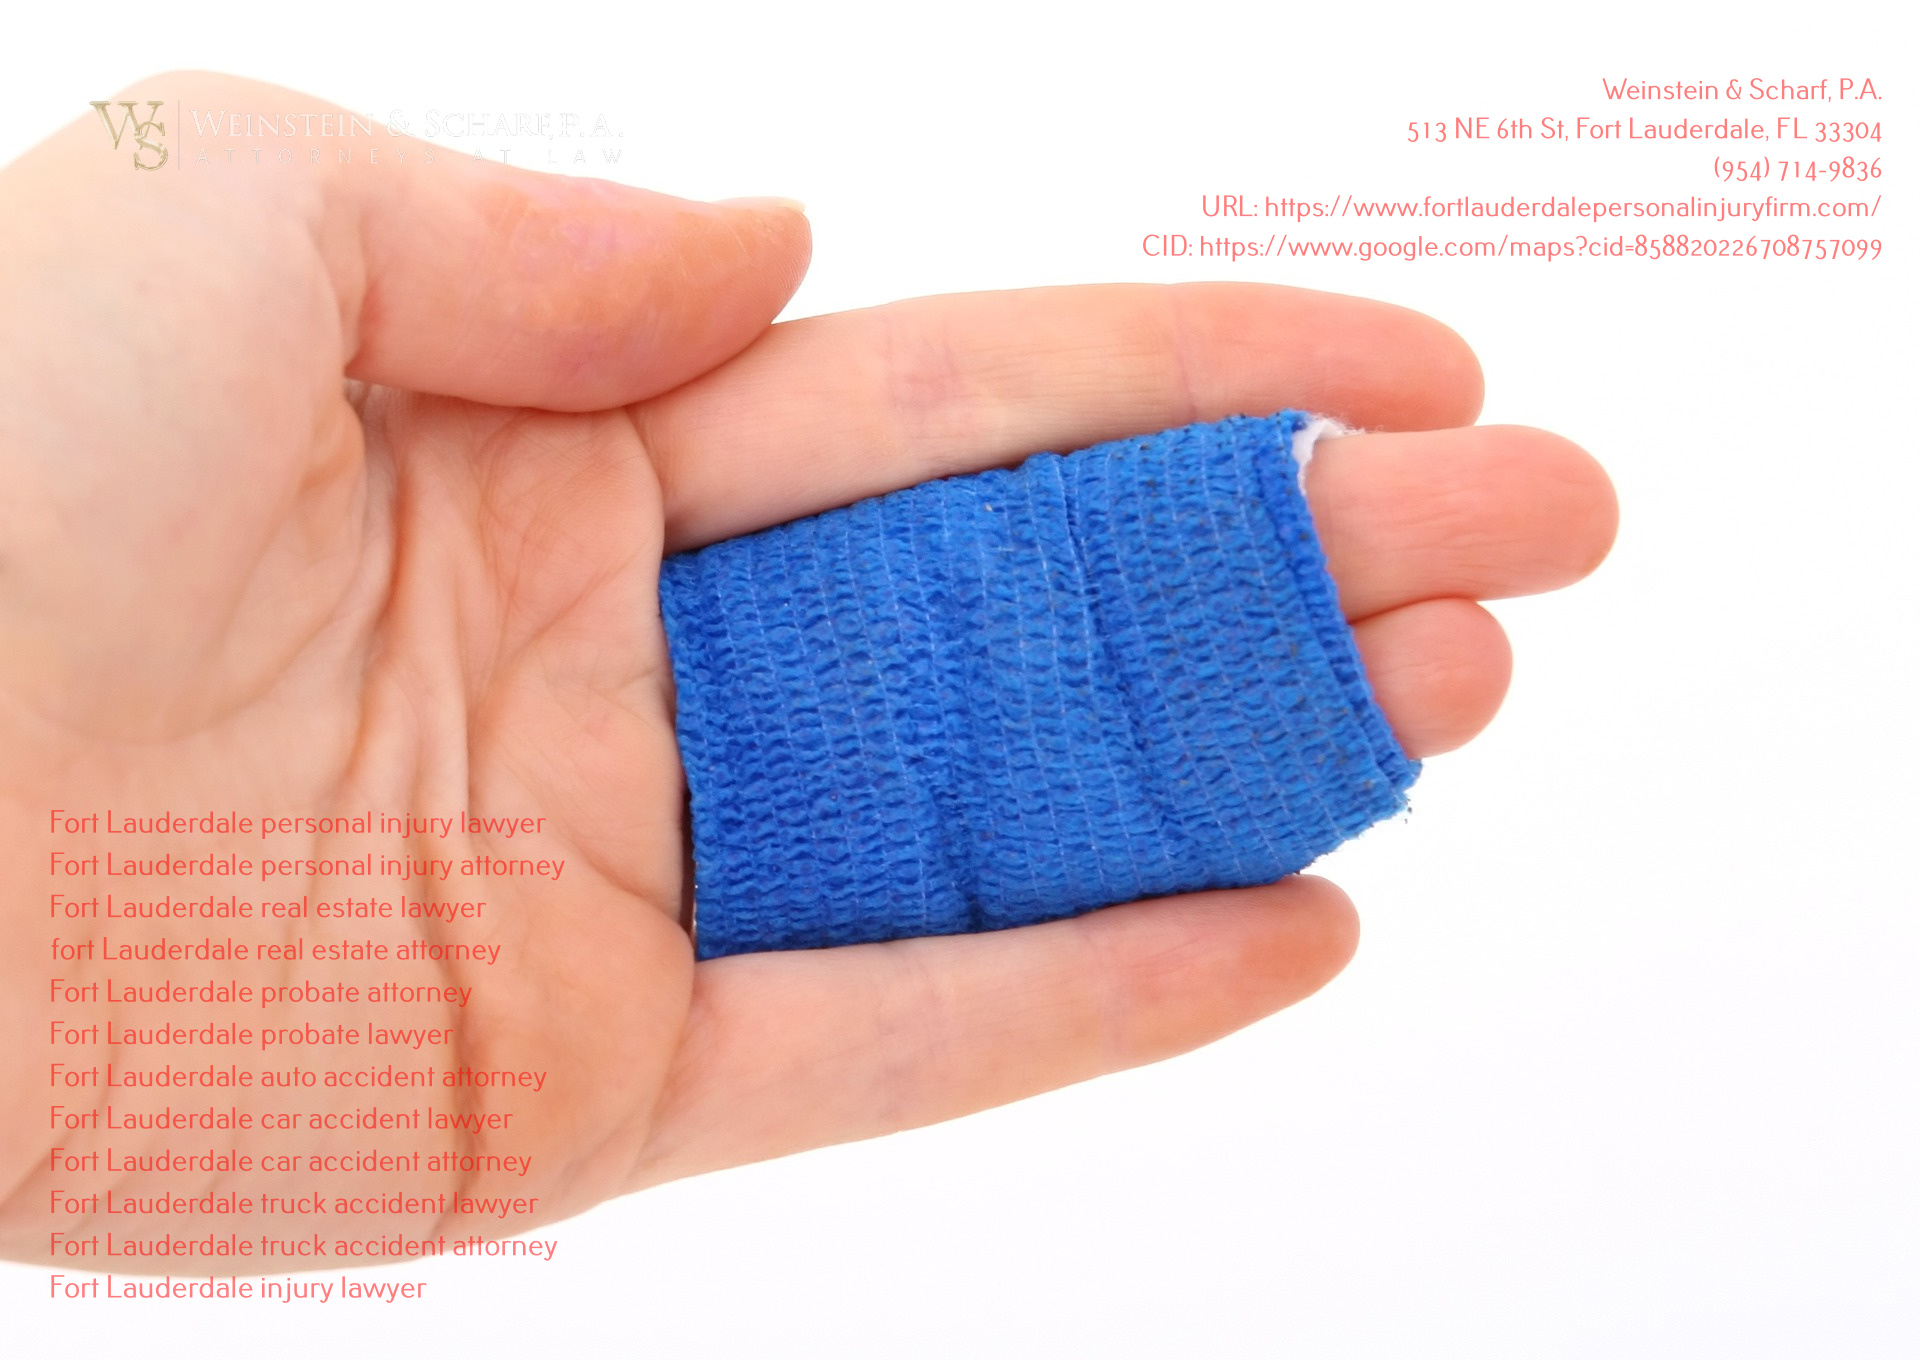 Weinstein & Scharf, P.A. Provides Tips for Handling Insurance Companies After an Injury